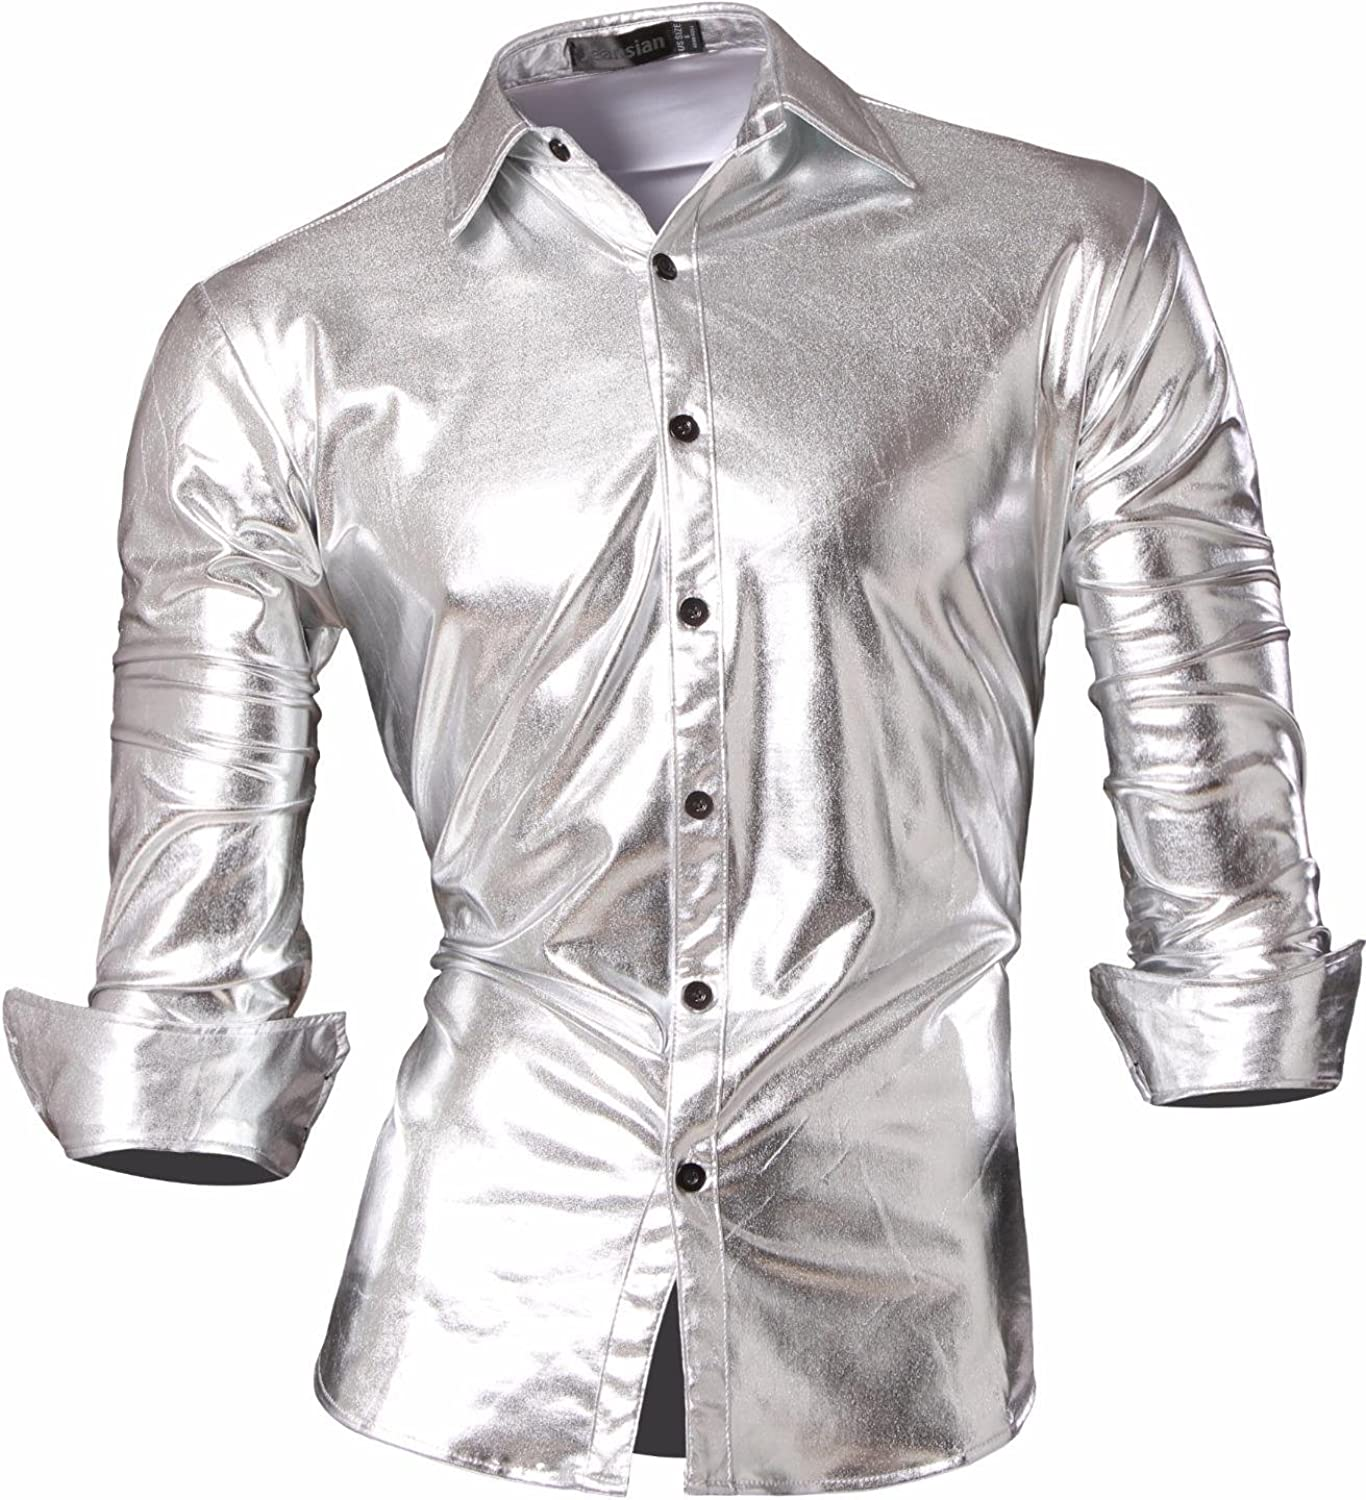 1960s – 70s Mens Shirts- Disco Shirts, Hippie Shirts jeansian Mens Fashion Bronzing Bling Shiny Slim Button Down Long Sleeves Dress Shirts Tops Z036 £14.99 AT vintagedancer.com